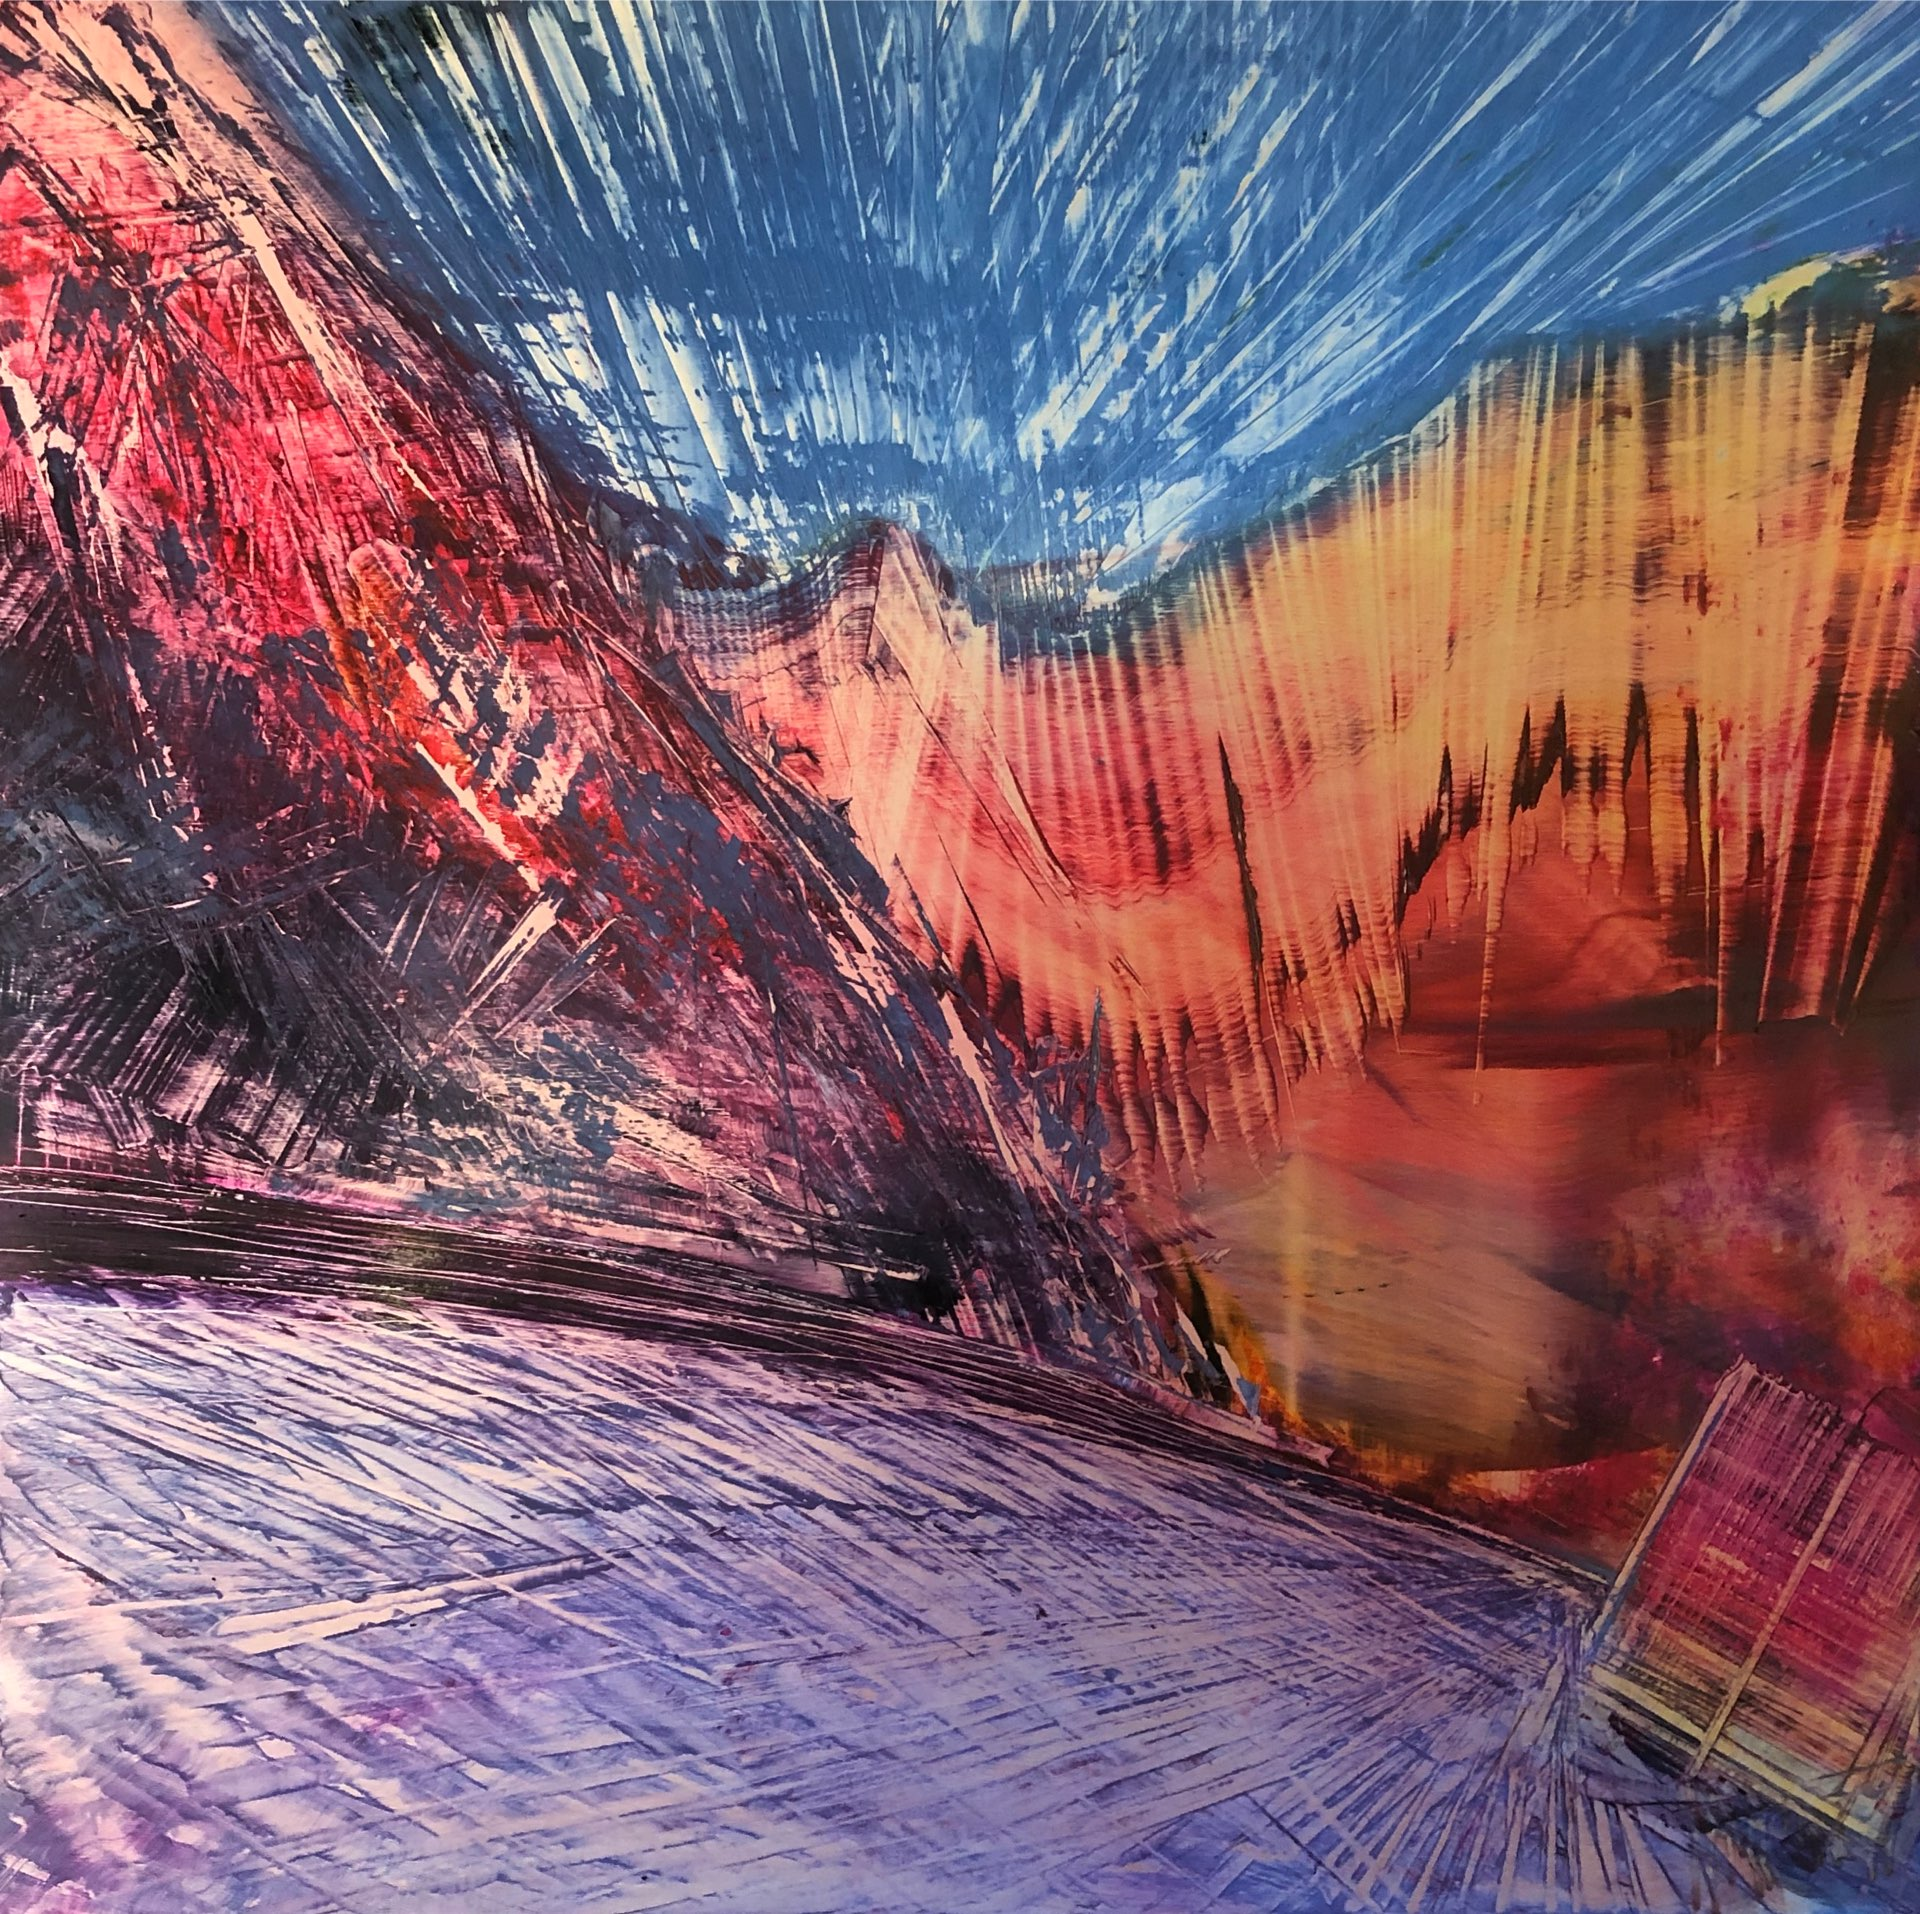 Sidewinder, Contemporary oil painting on metal of roads and a journey, Fine Art by Cynthia McLoughlin